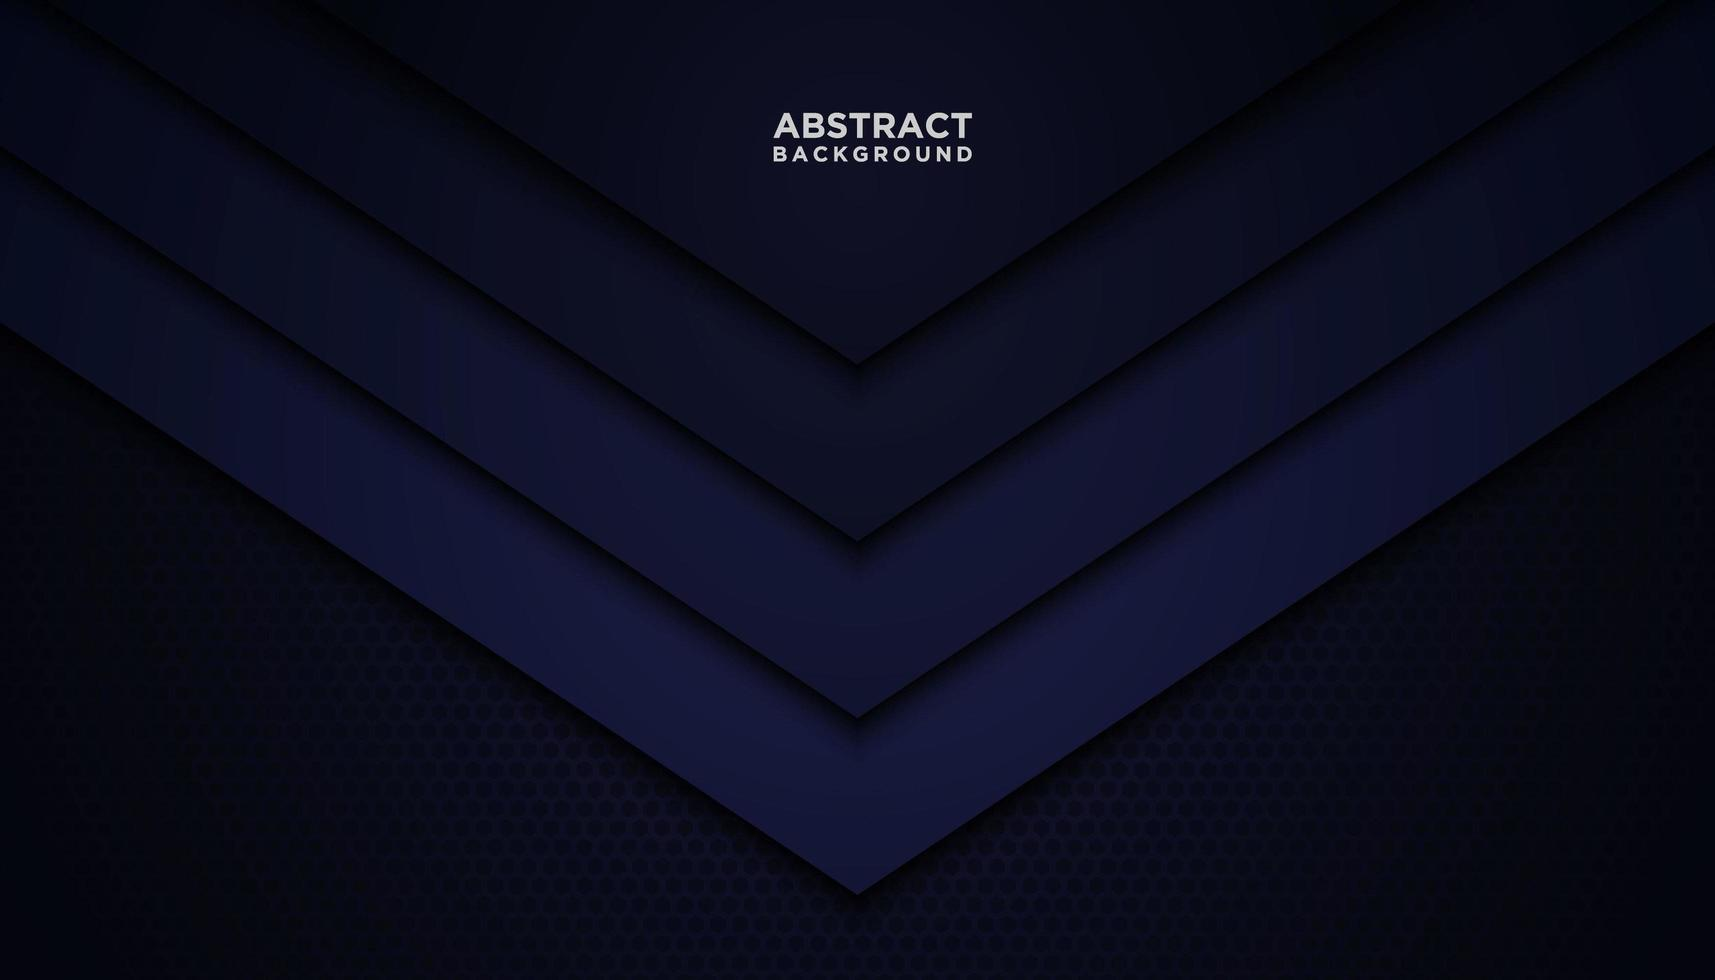 Dark Blue Abstract Triangle Layers Background vector